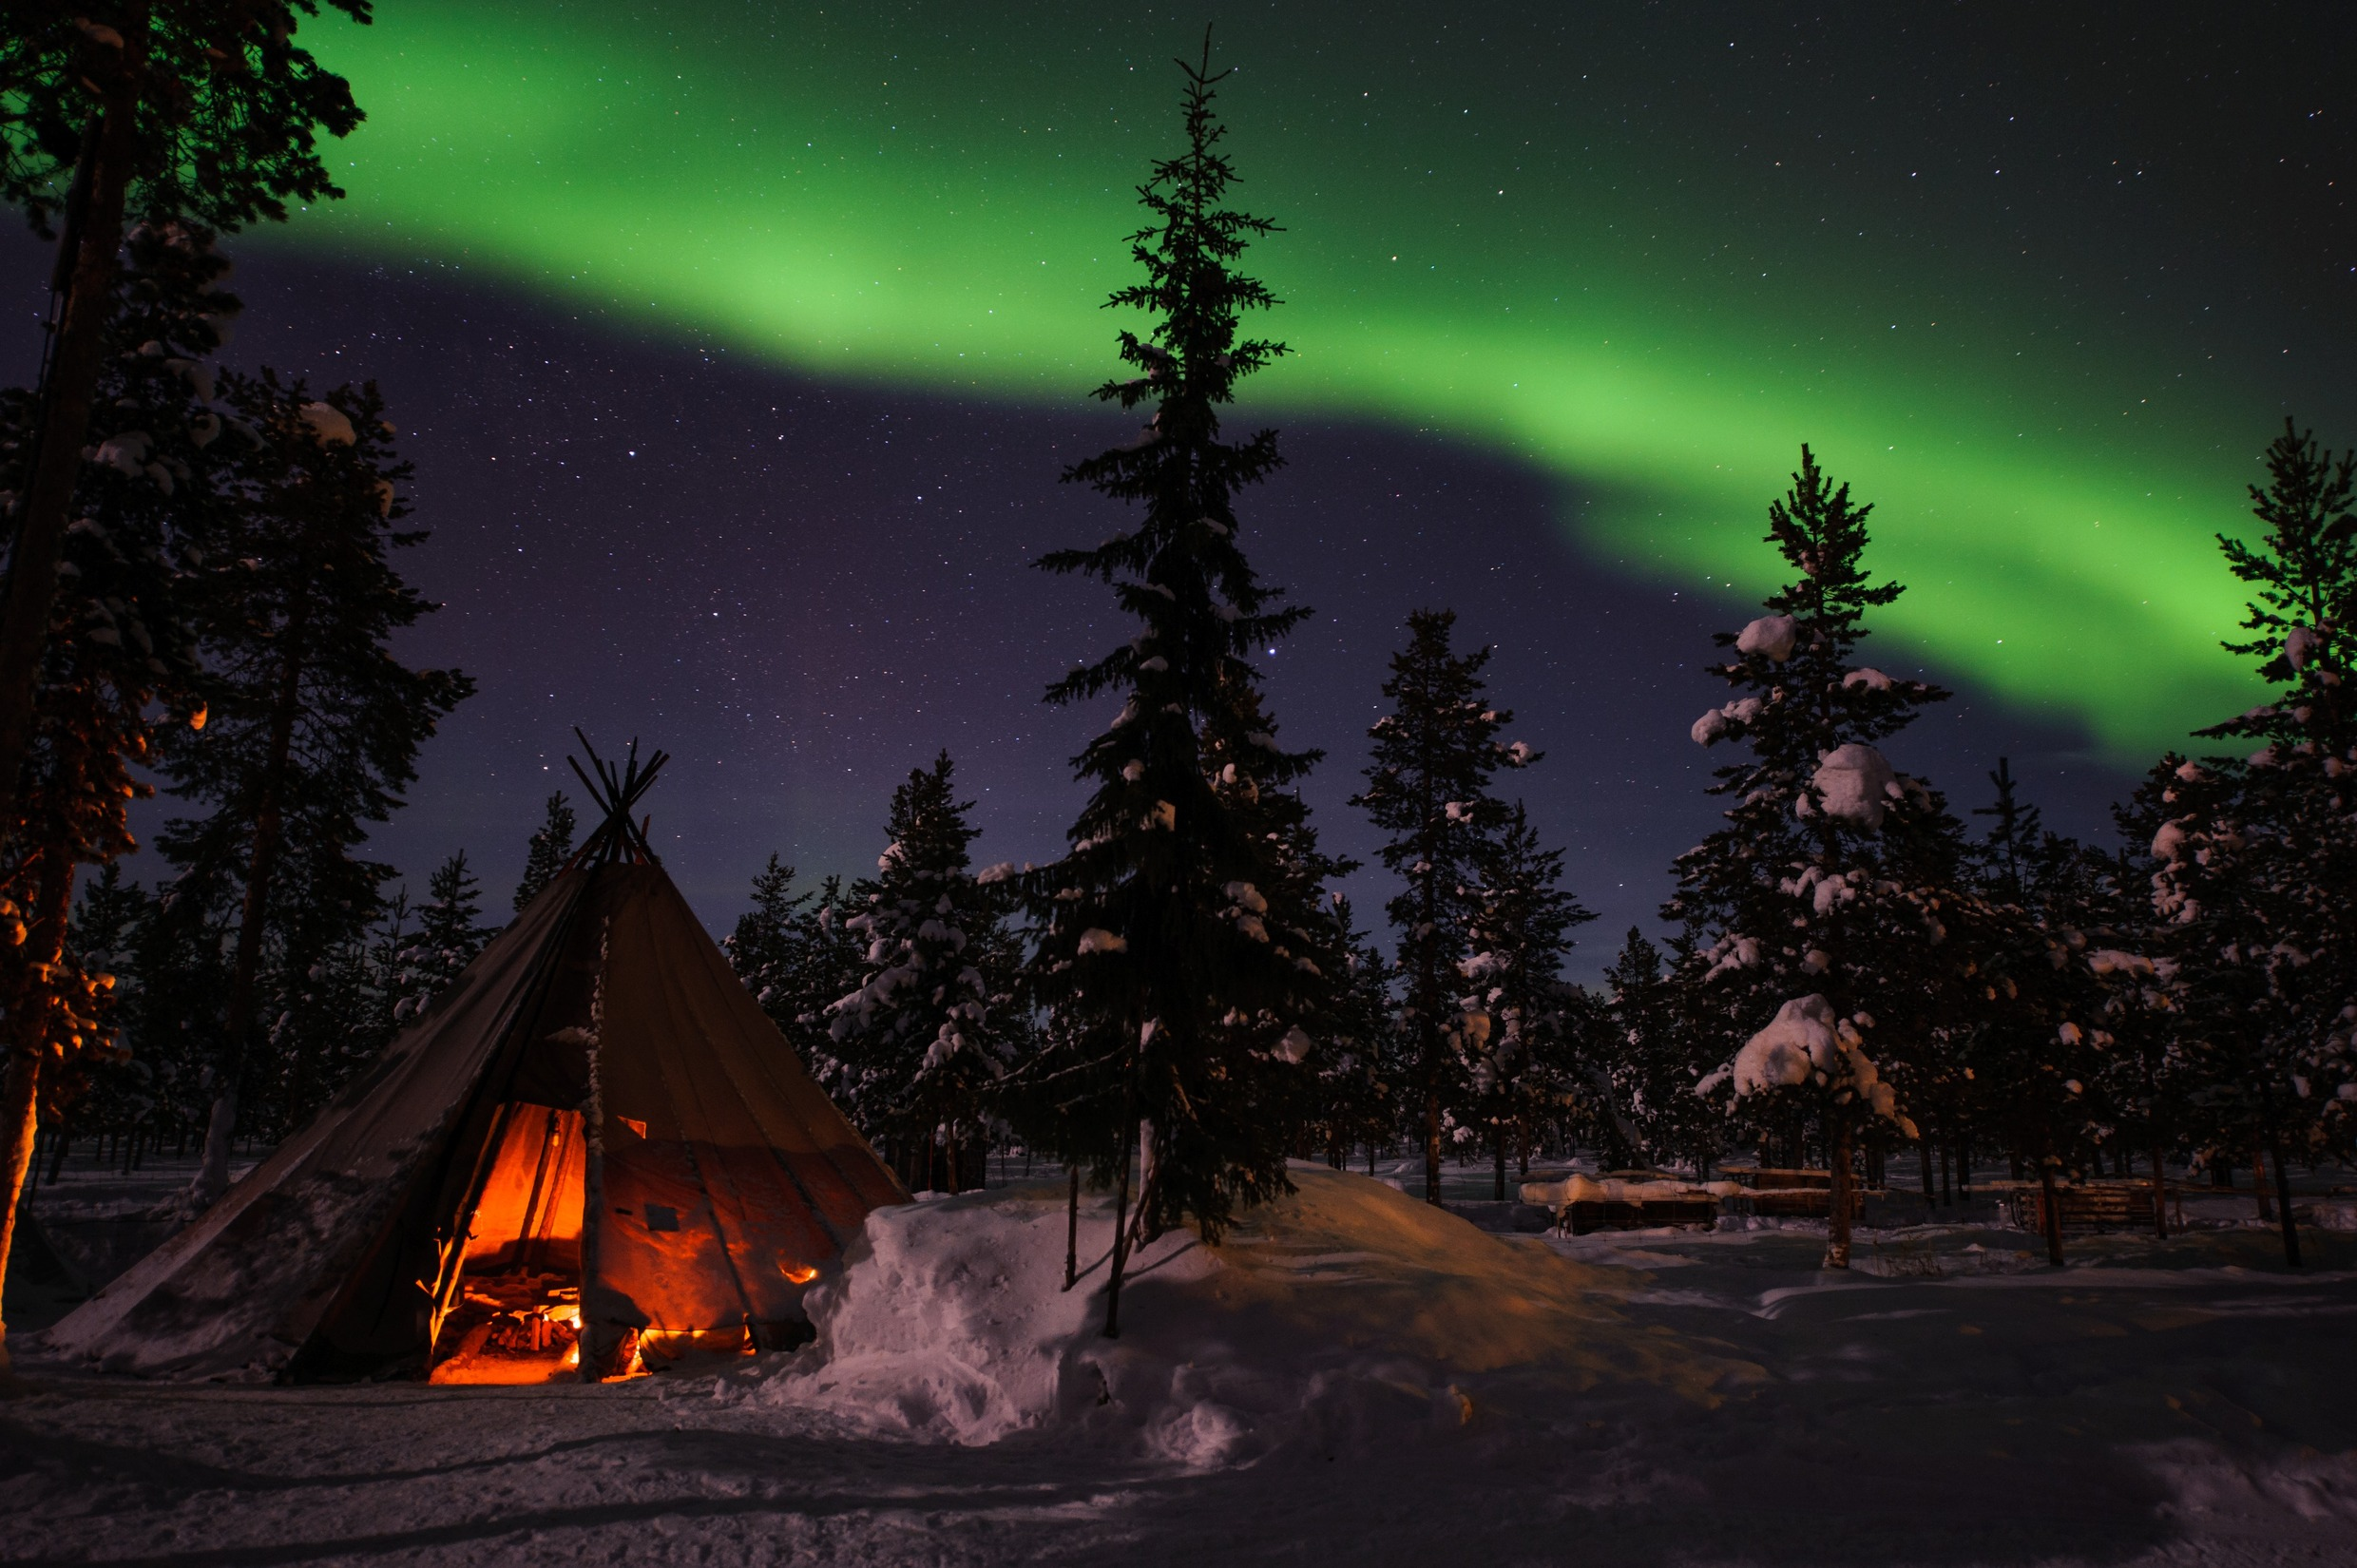 lola_akinmade_akerstrom-northern_lights_in_jukkasjarvi-2602